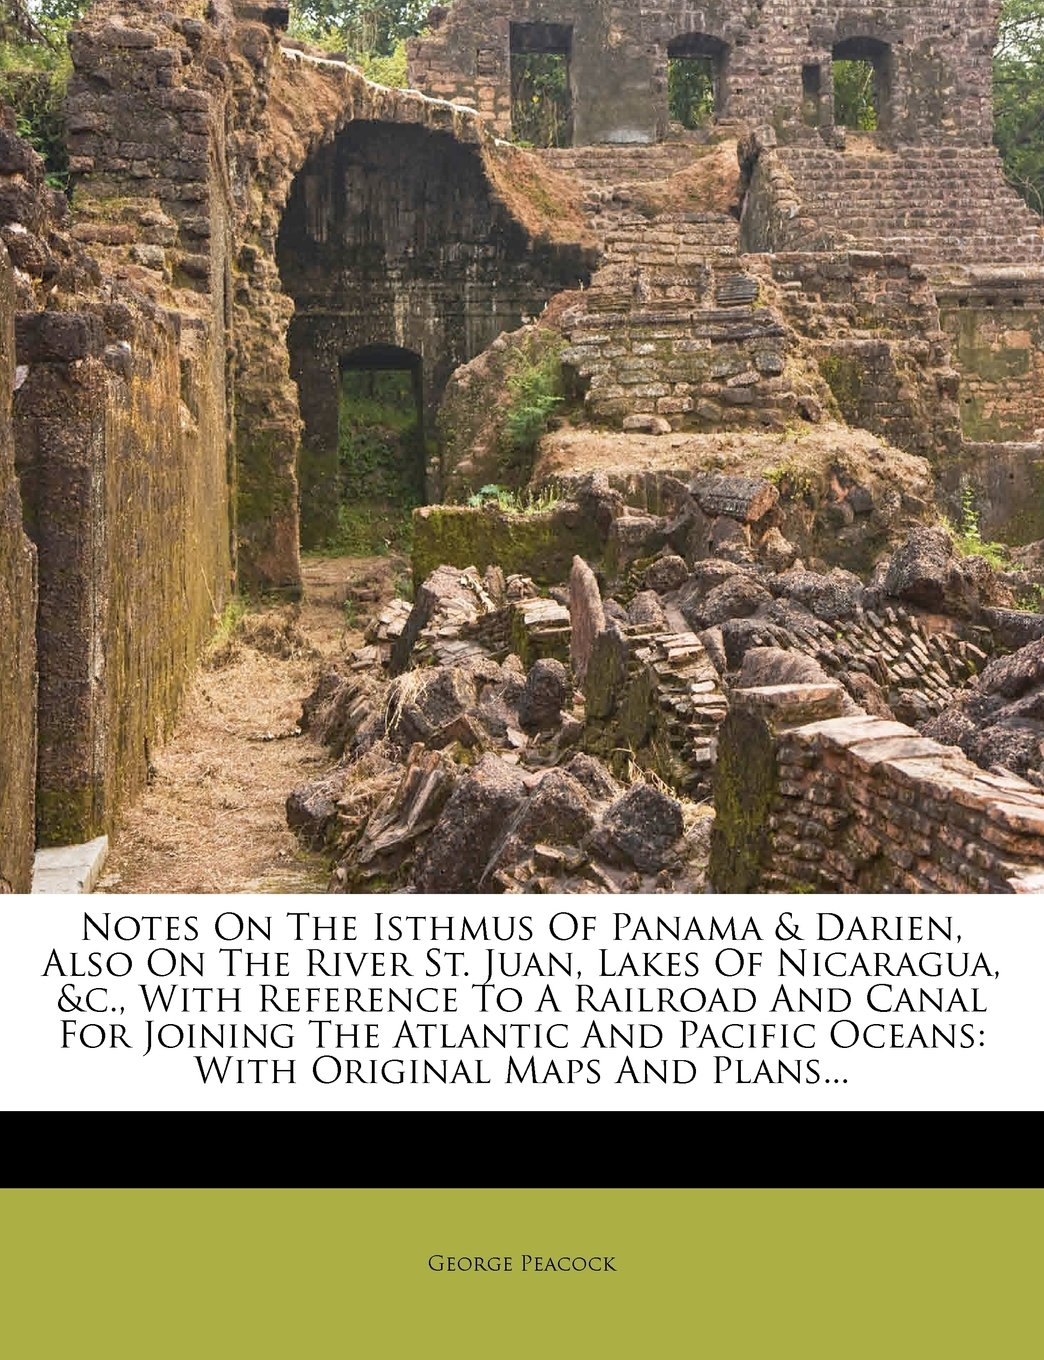 Read Online Notes on the Isthmus of Panama & Darien, Also on the River St. Juan, Lakes of Nicaragua, &C., with Reference to a Railroad and Canal for Joining the A pdf